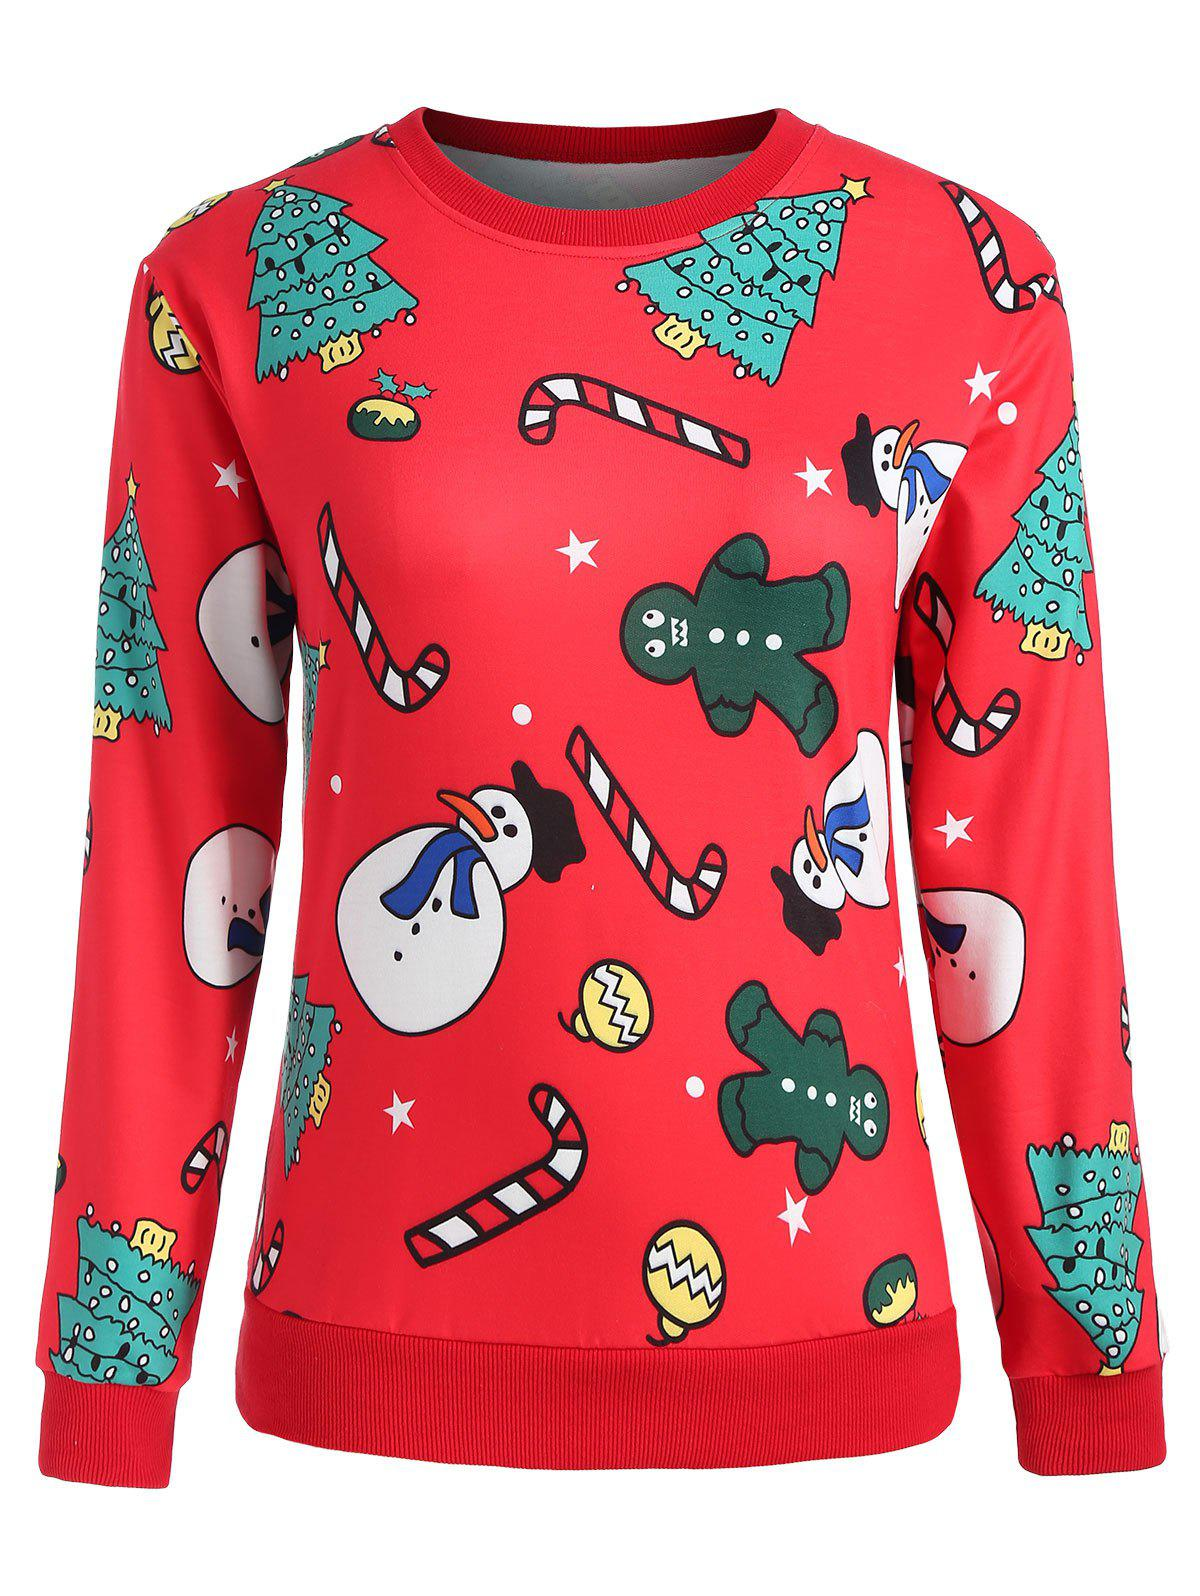 Plus Size Christmas Graphic Sweatshirt - RED 1X